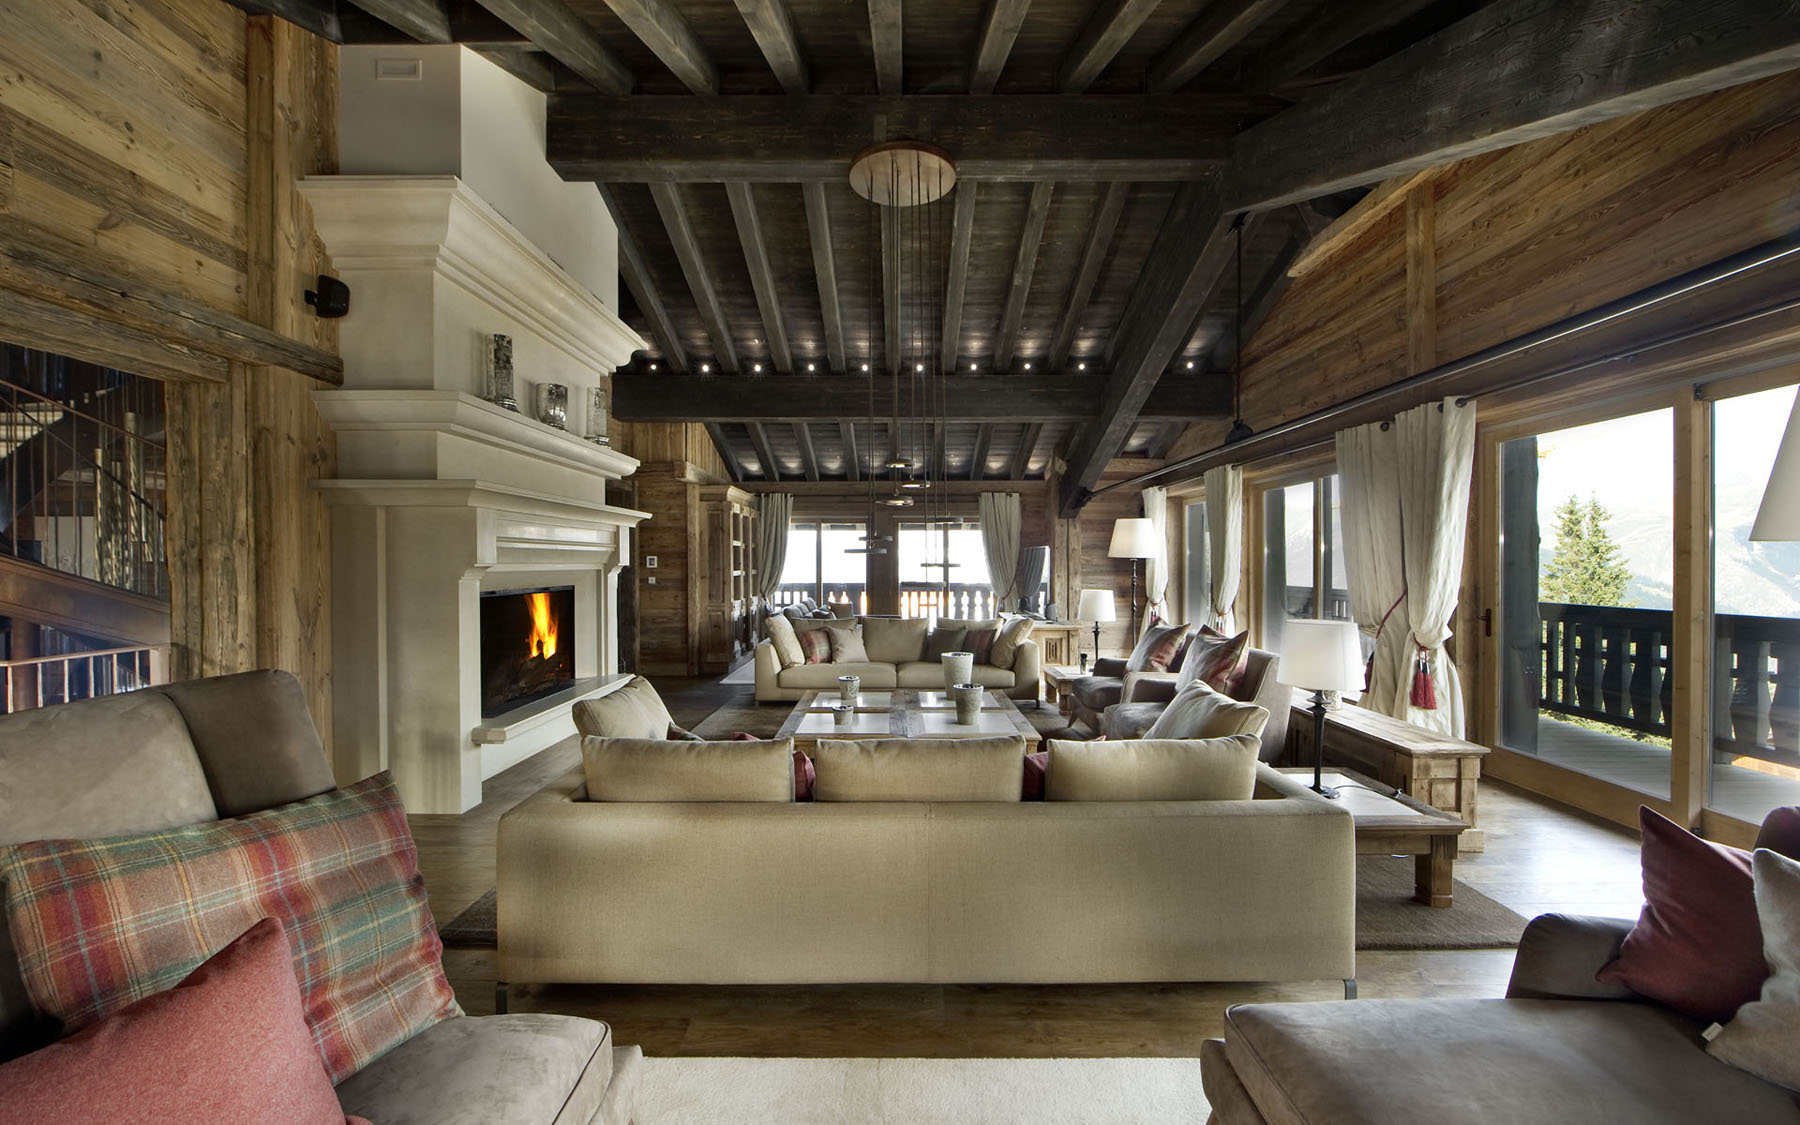 Courchevel France Ski Chalet